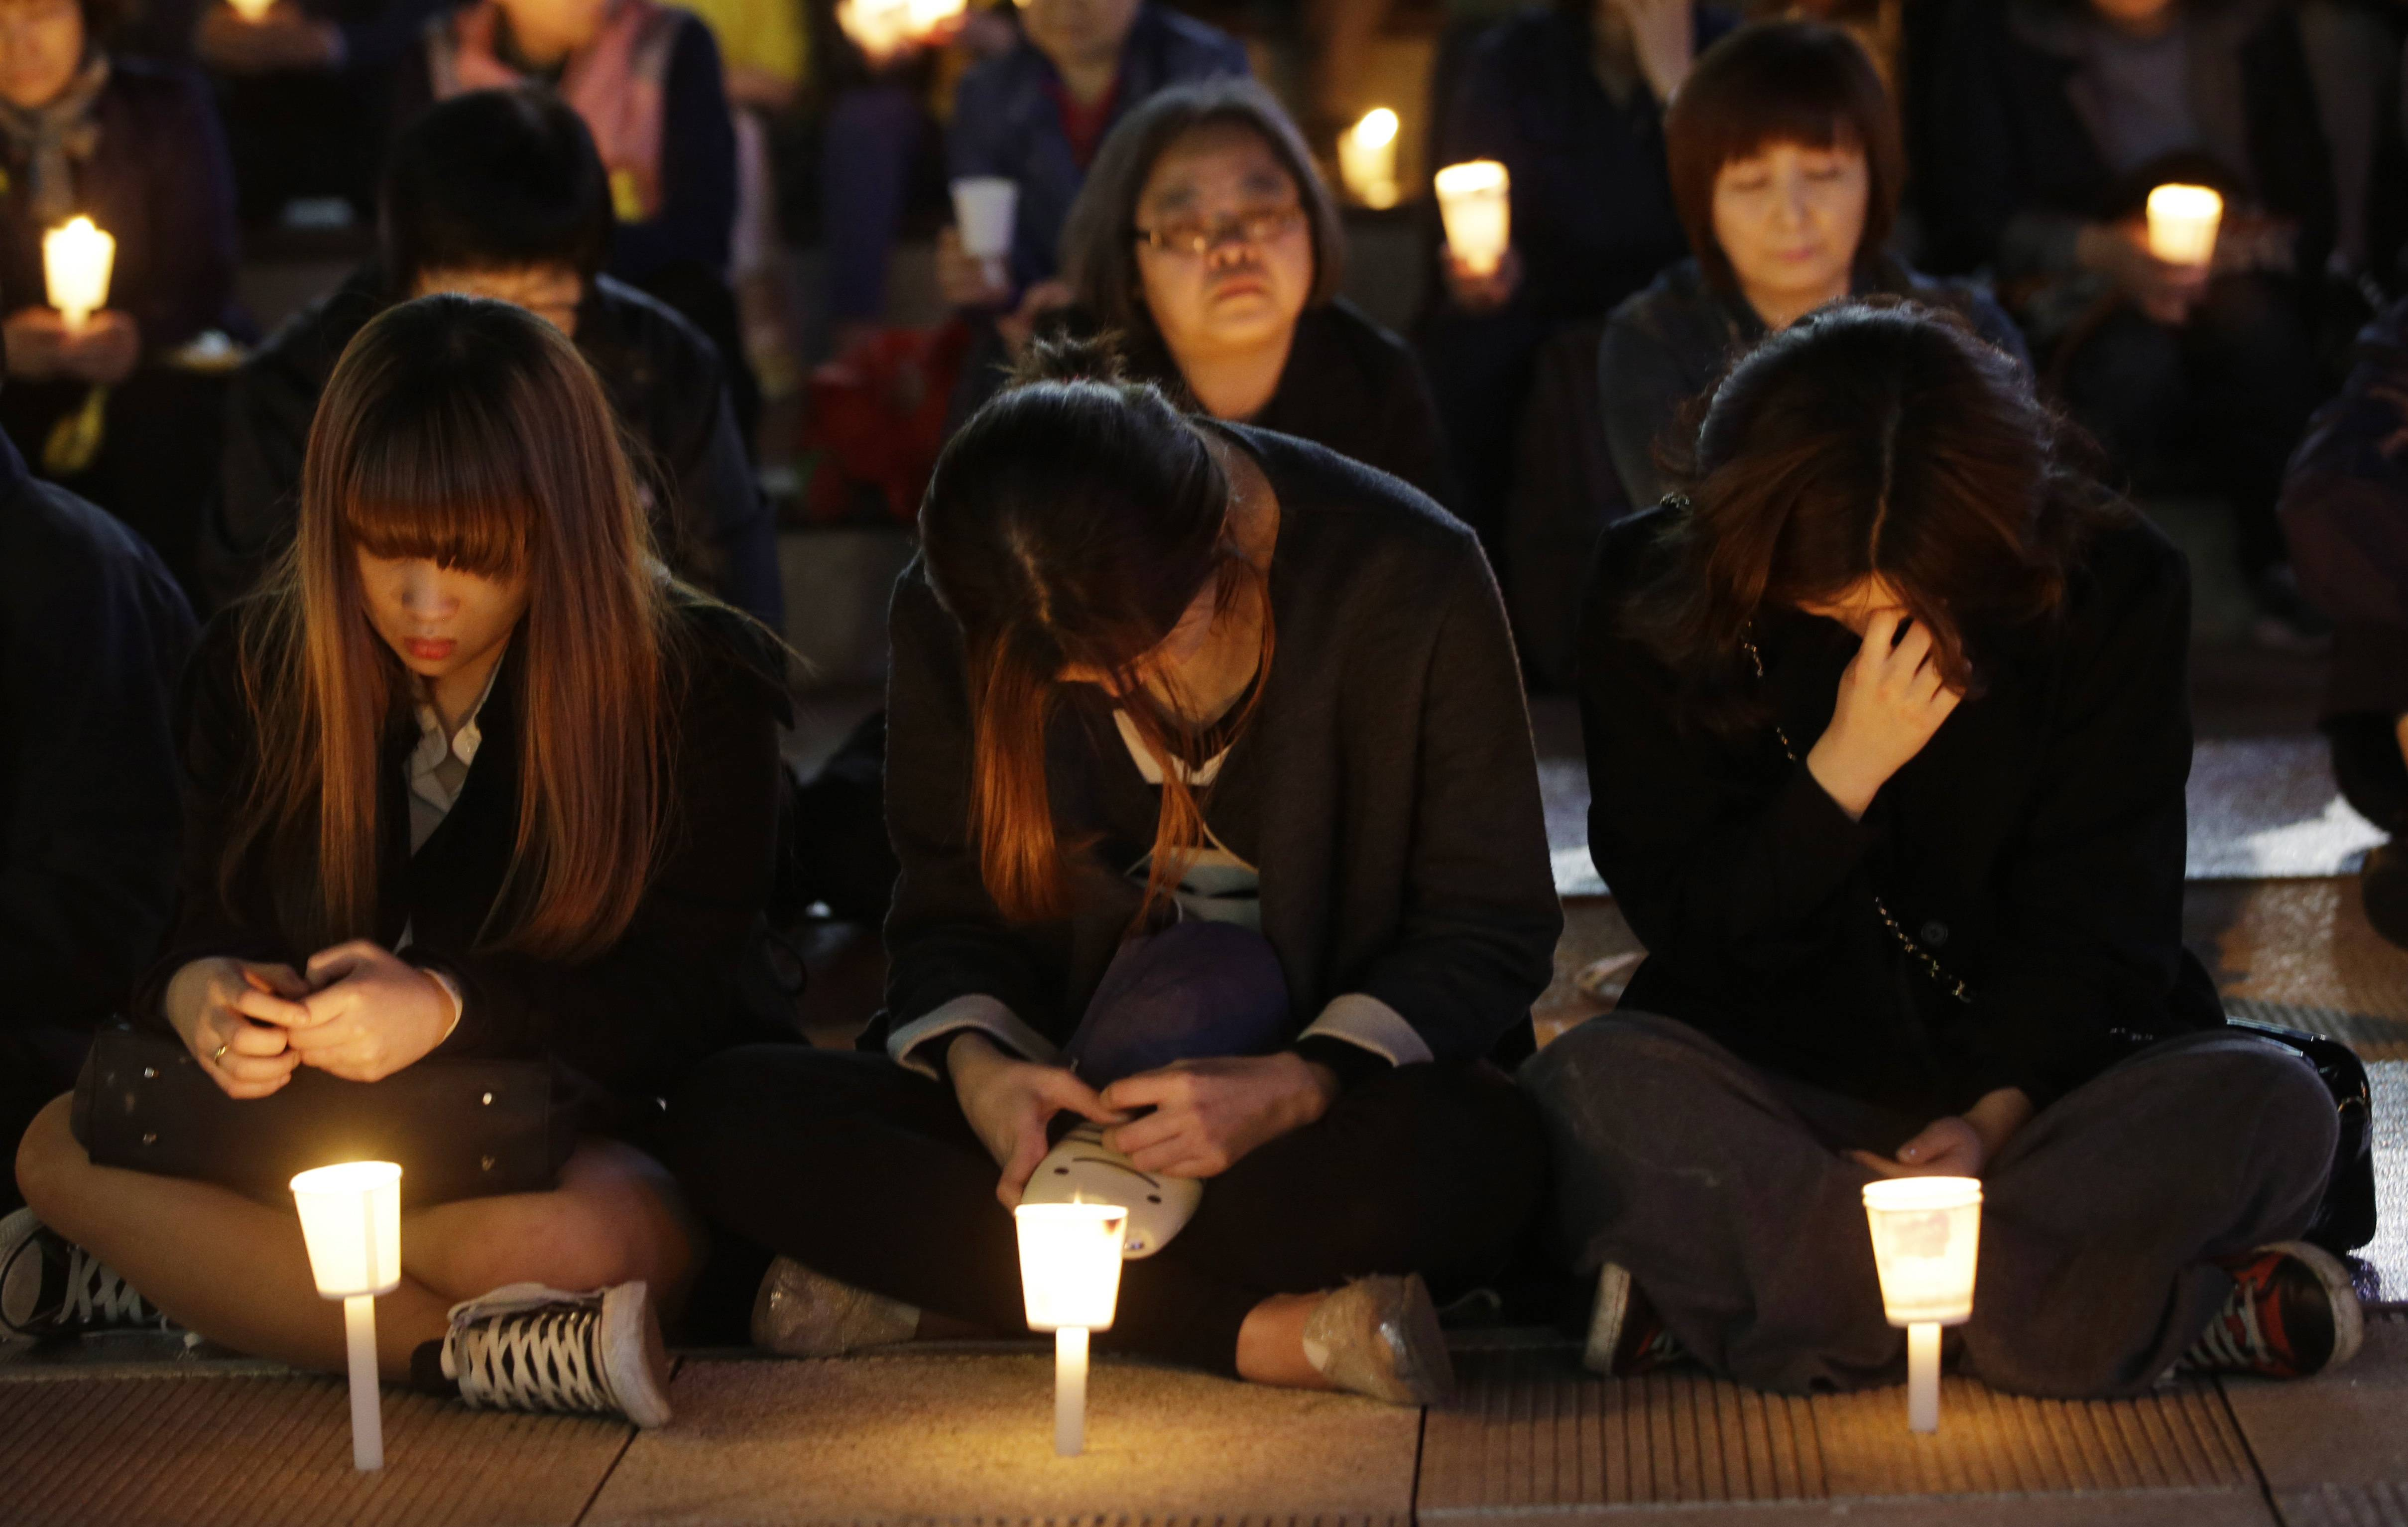 As visiting President Barack Obama offered South Koreans his condolences Friday for the ferry disaster, the South Korean government conceded that some bodies have been misidentified and announced changes to prevent such mistakes from happening again.